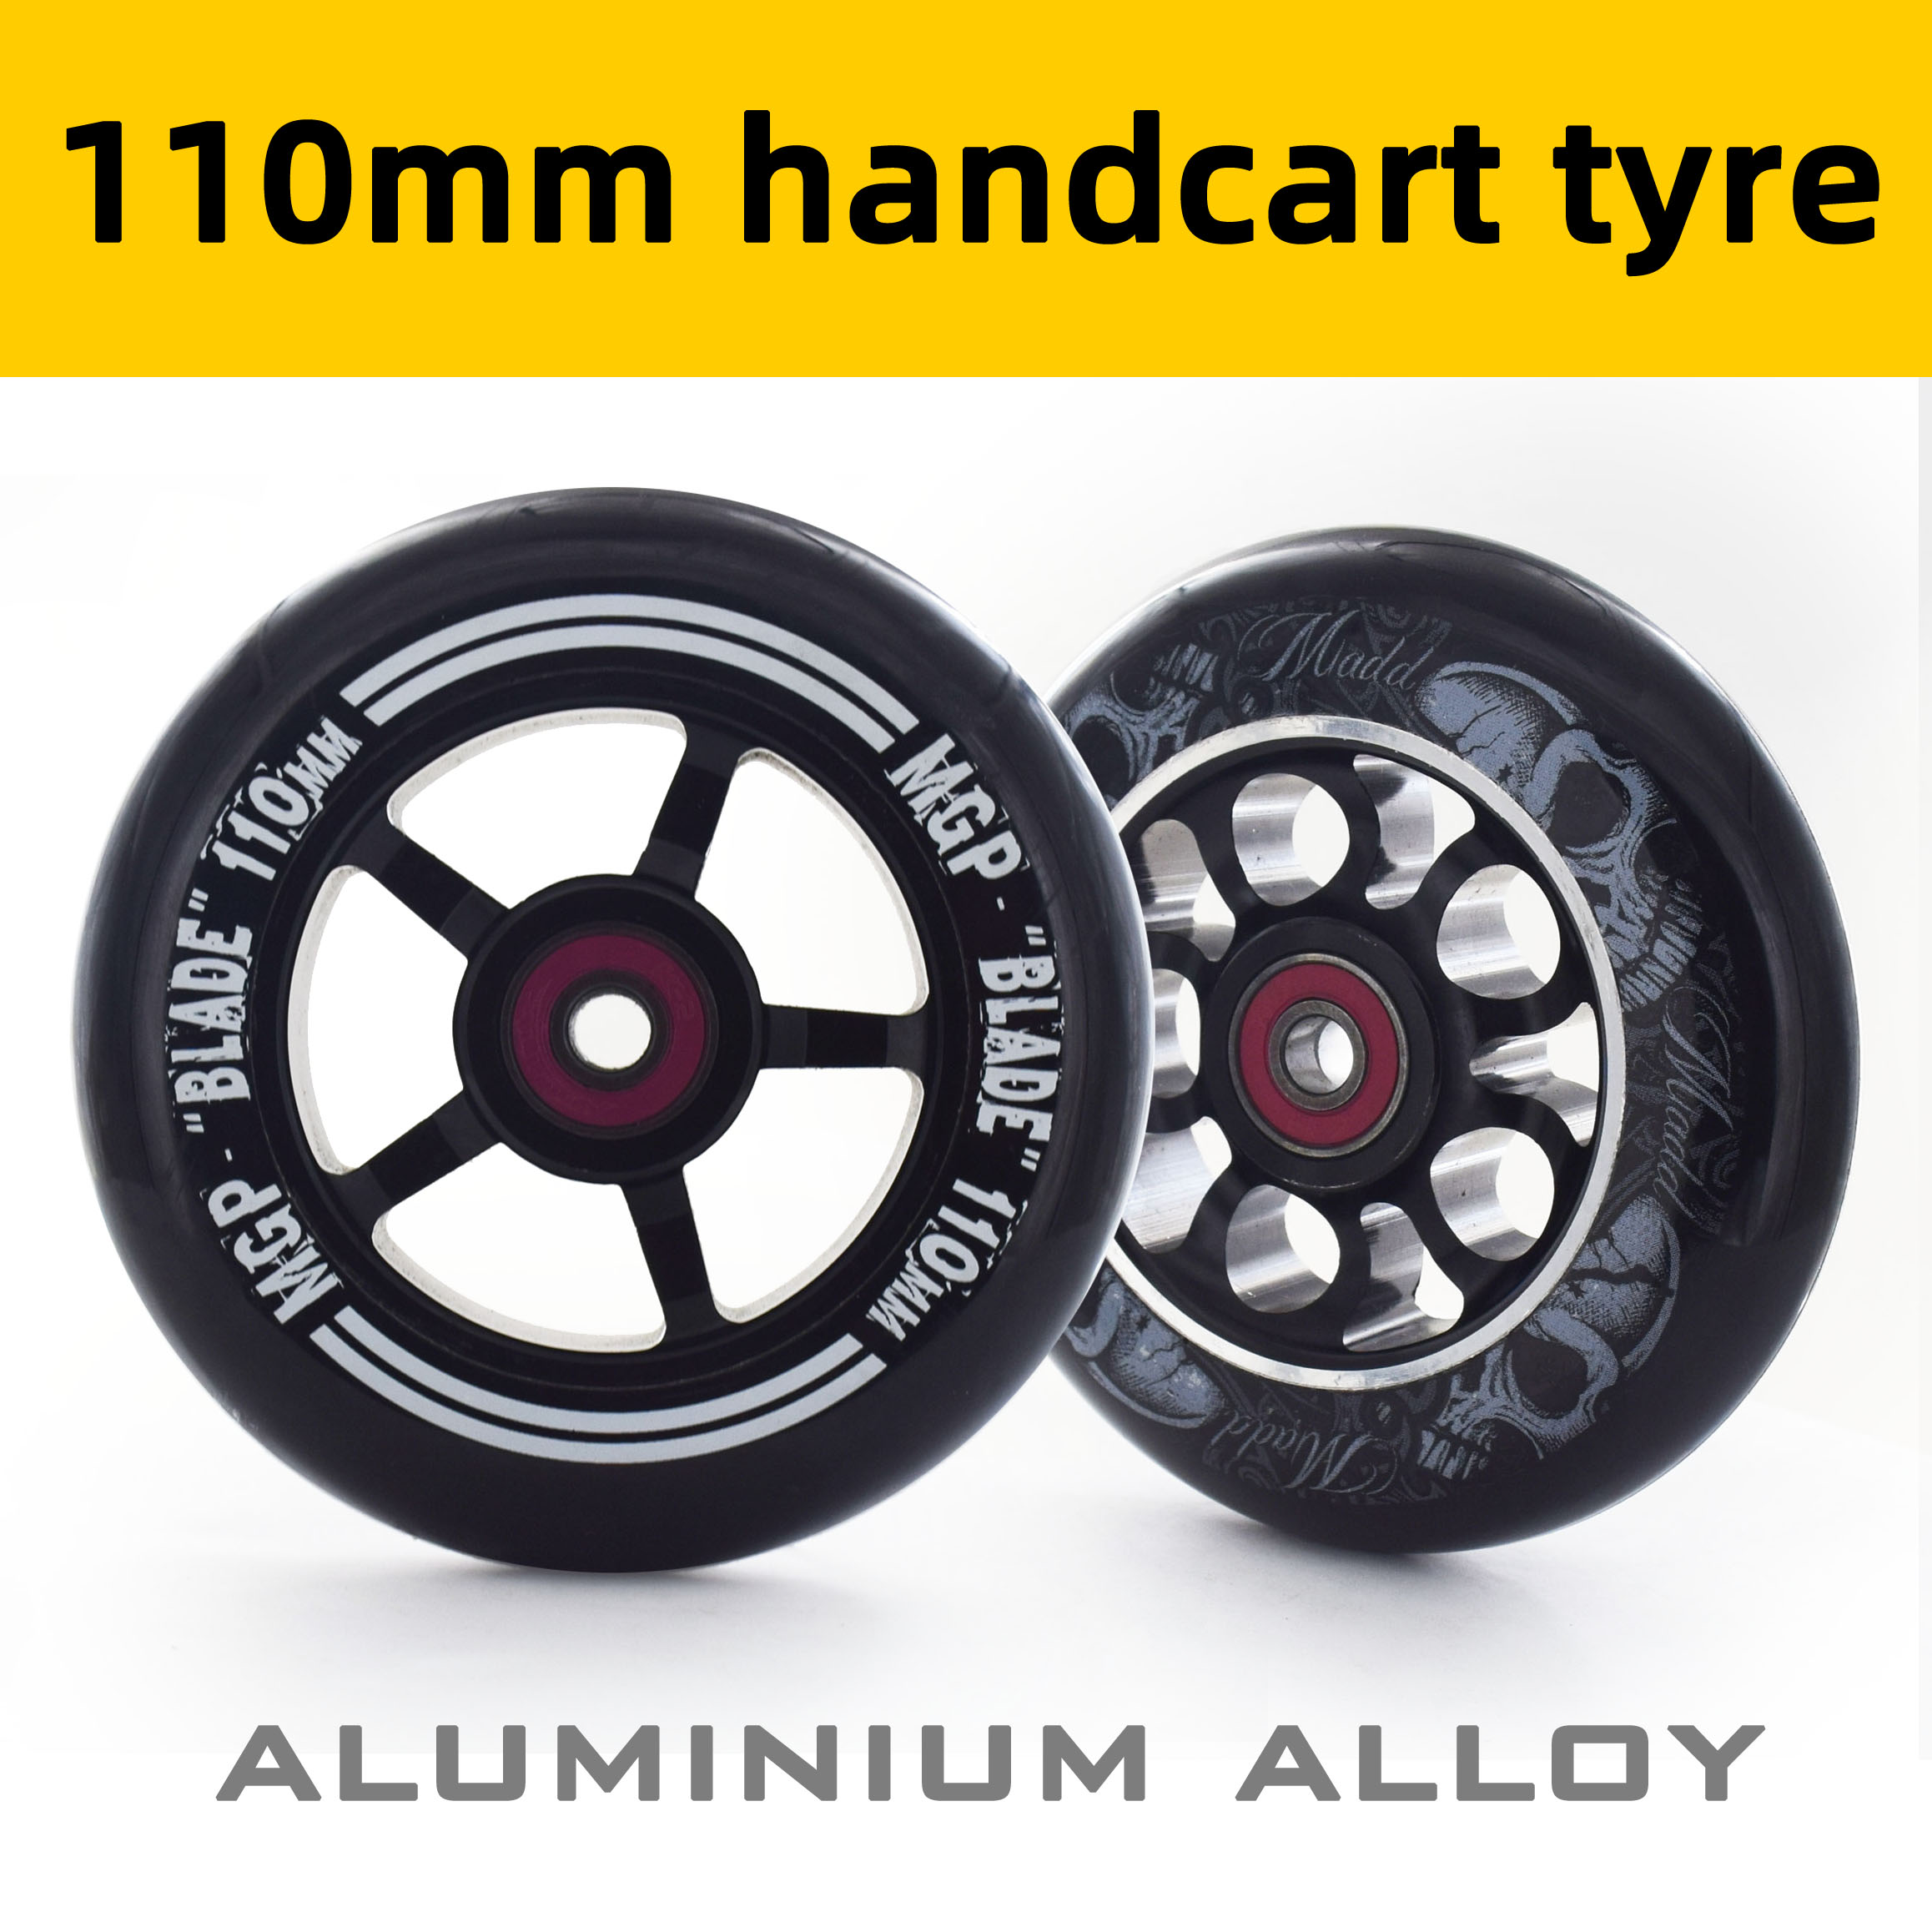 110mm handcart tyre Scooter wheels with iron hub, stable and precise design, black aluminium alloy CNC 88A PU